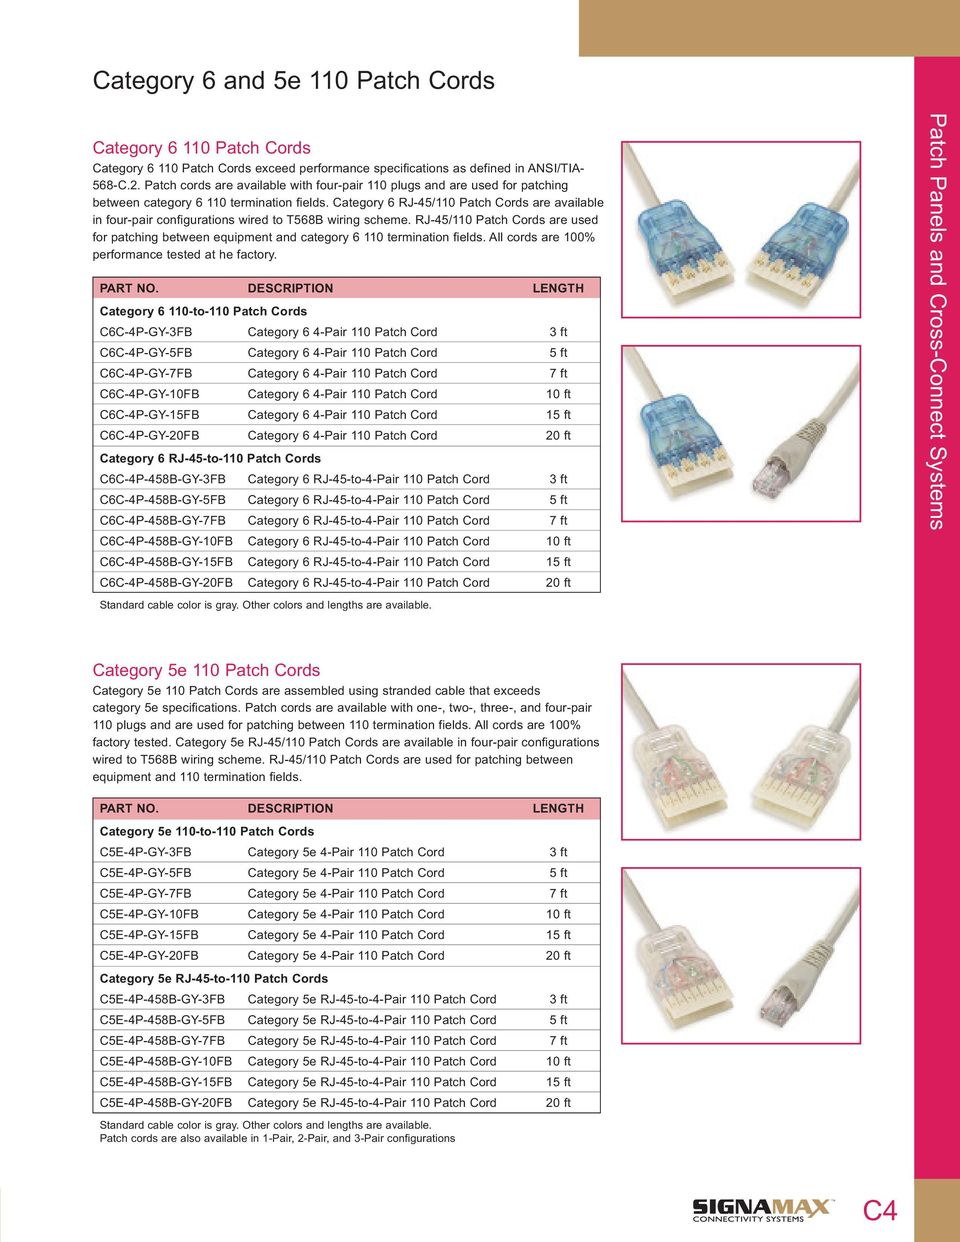 Patch Cords Cable Assemblies Premise Diagram In Addition Cat5e Crossover On Cat 5e Category 6 Rj 45 110 Are Available Four Pair Configurations